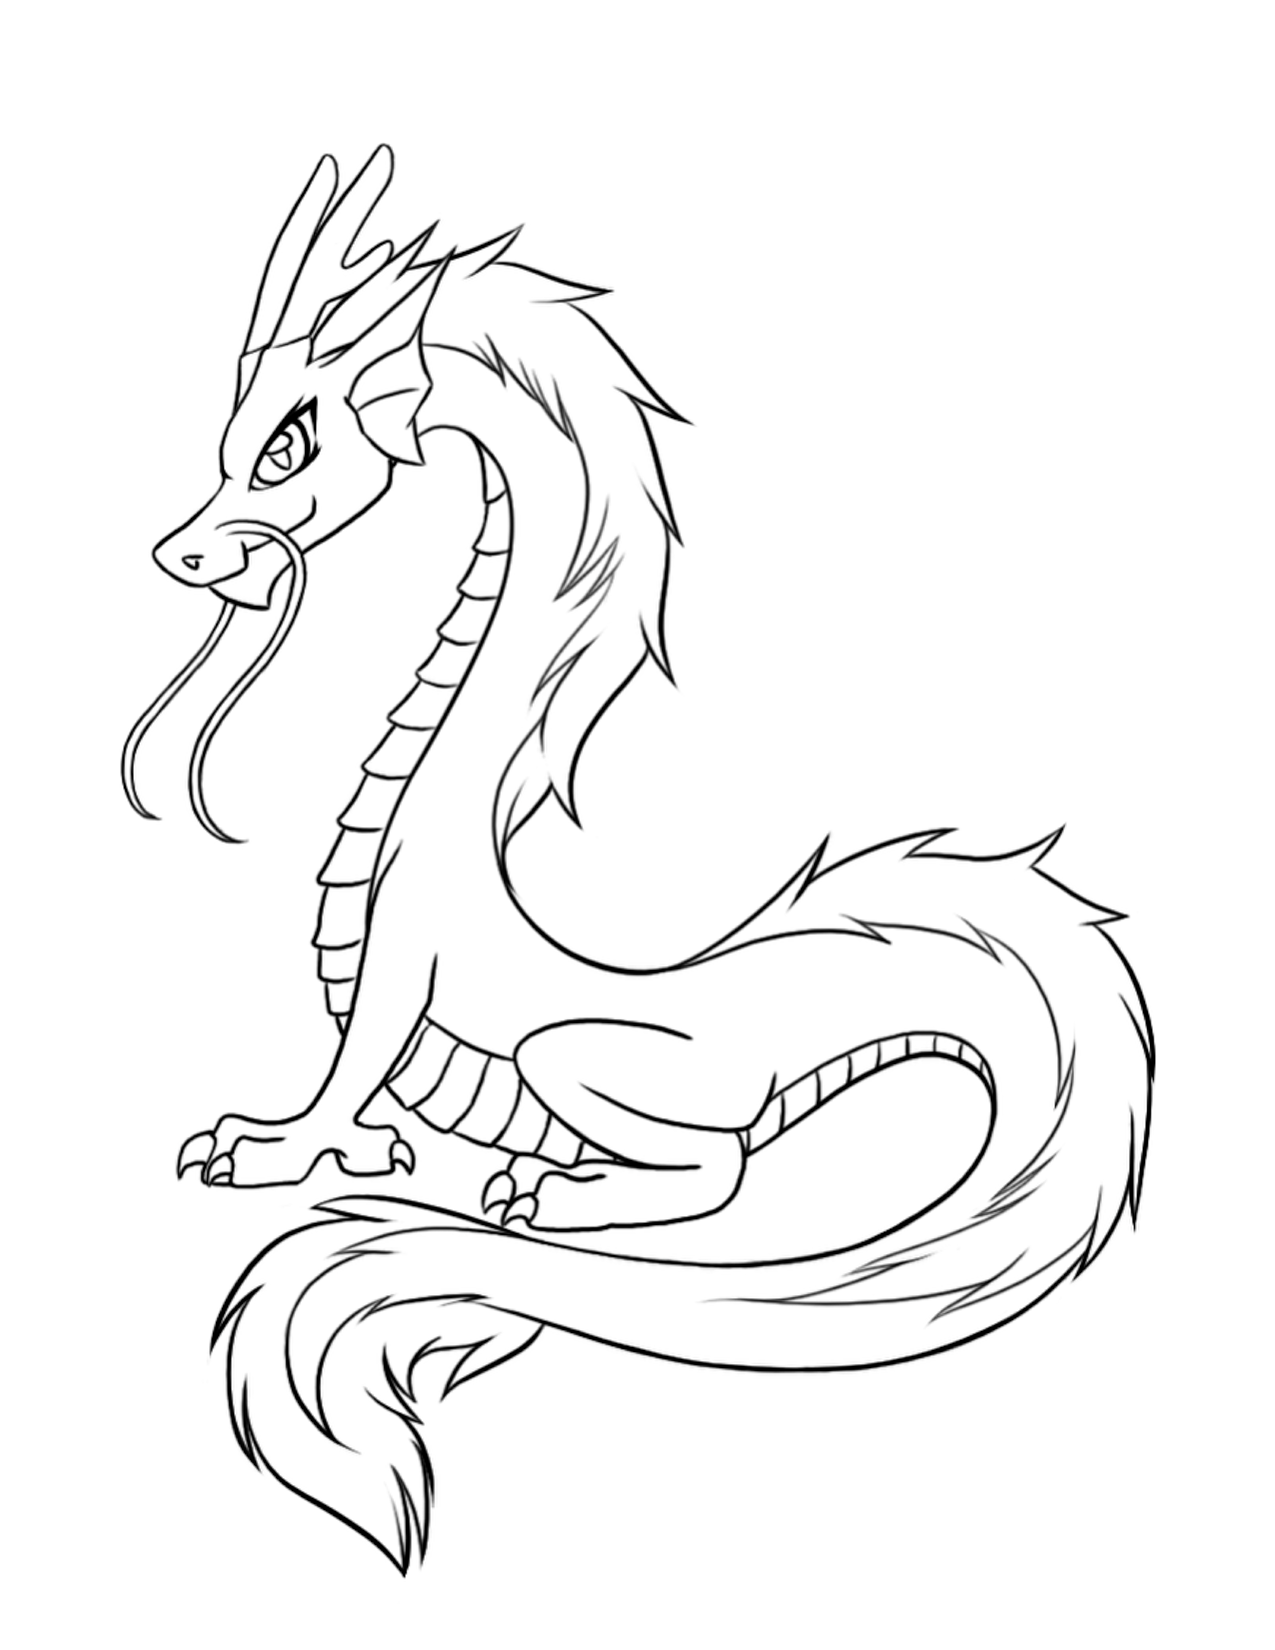 dragon to color dragon coloring pages to download and print for free dragon color to